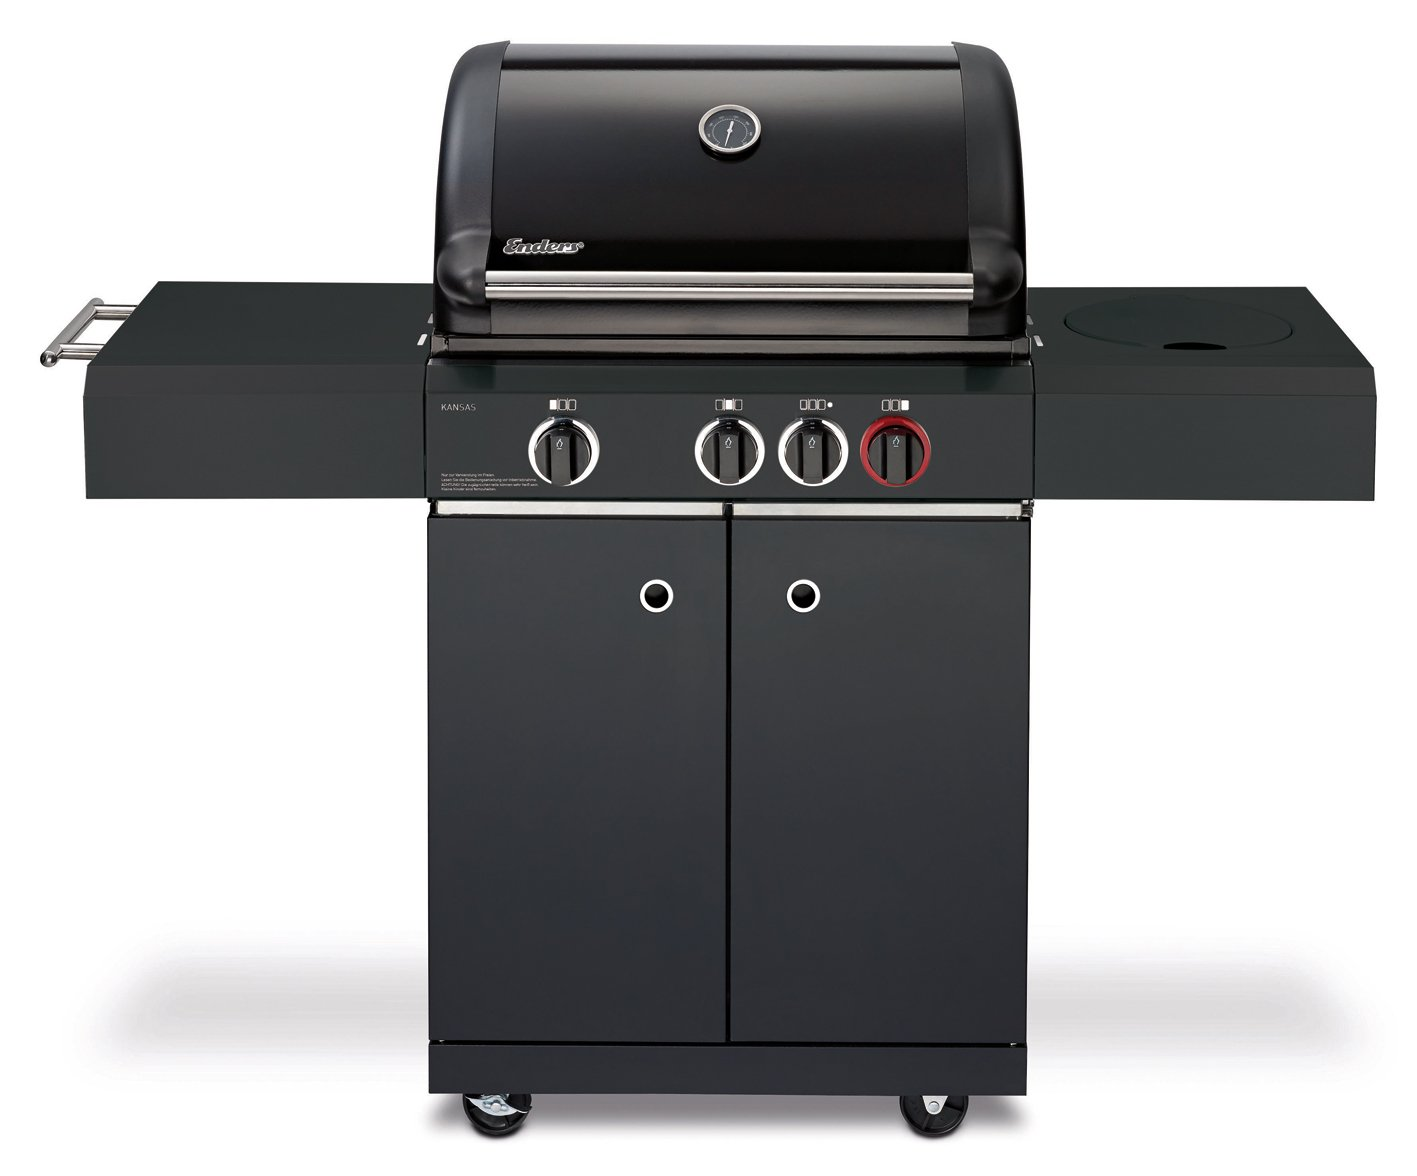 Enders Gasgrill Räuchern : Enders gasgrill kansas black k turbo amazon garten